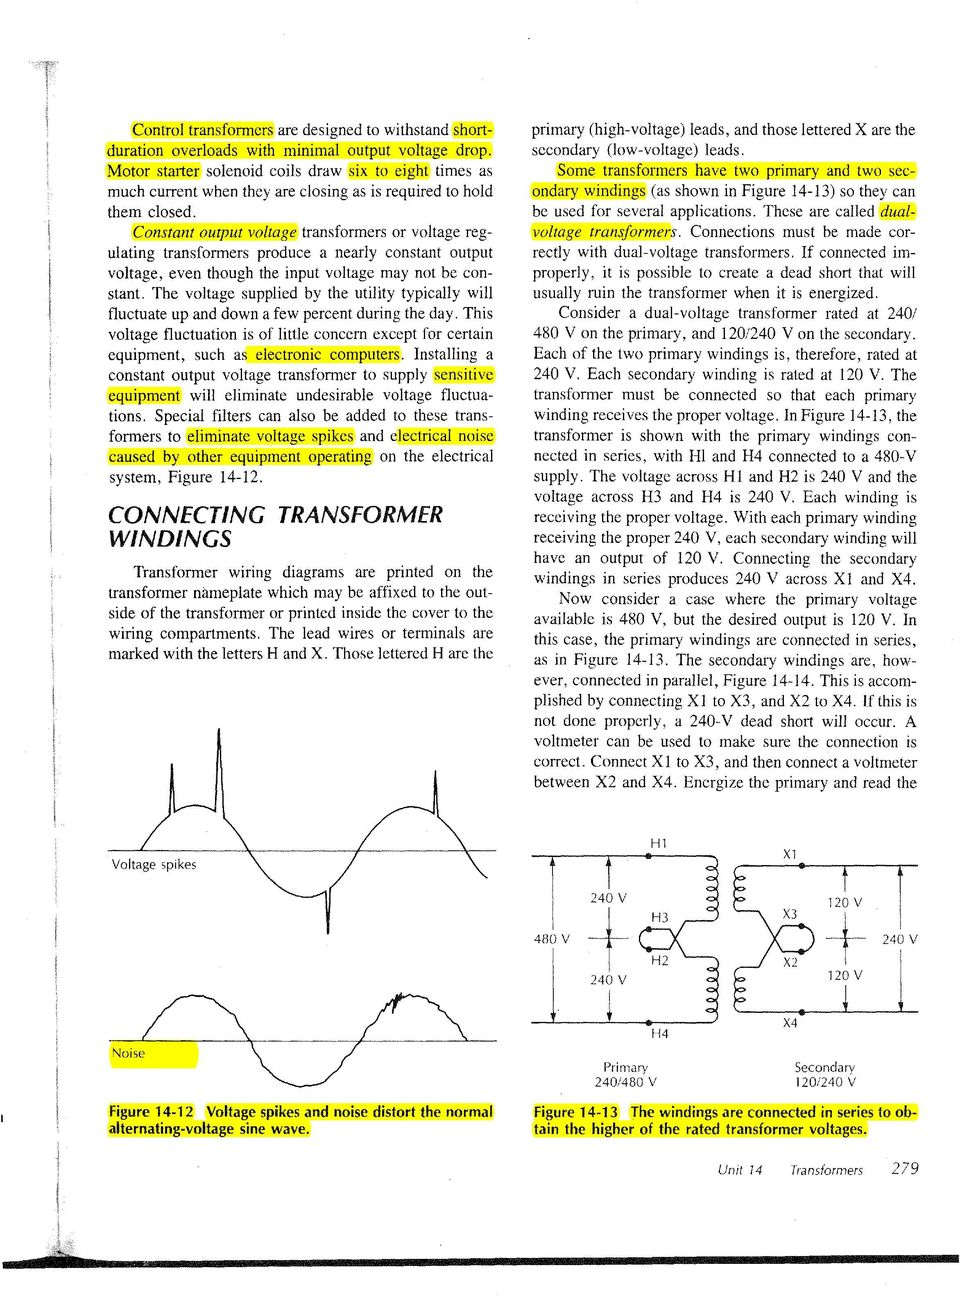 Transformers Unit 14 Objectives Pdf 480 240 120 Transformer Wiring Diagram Constant Output Voltage Or Regulating Produce A Nearly Even